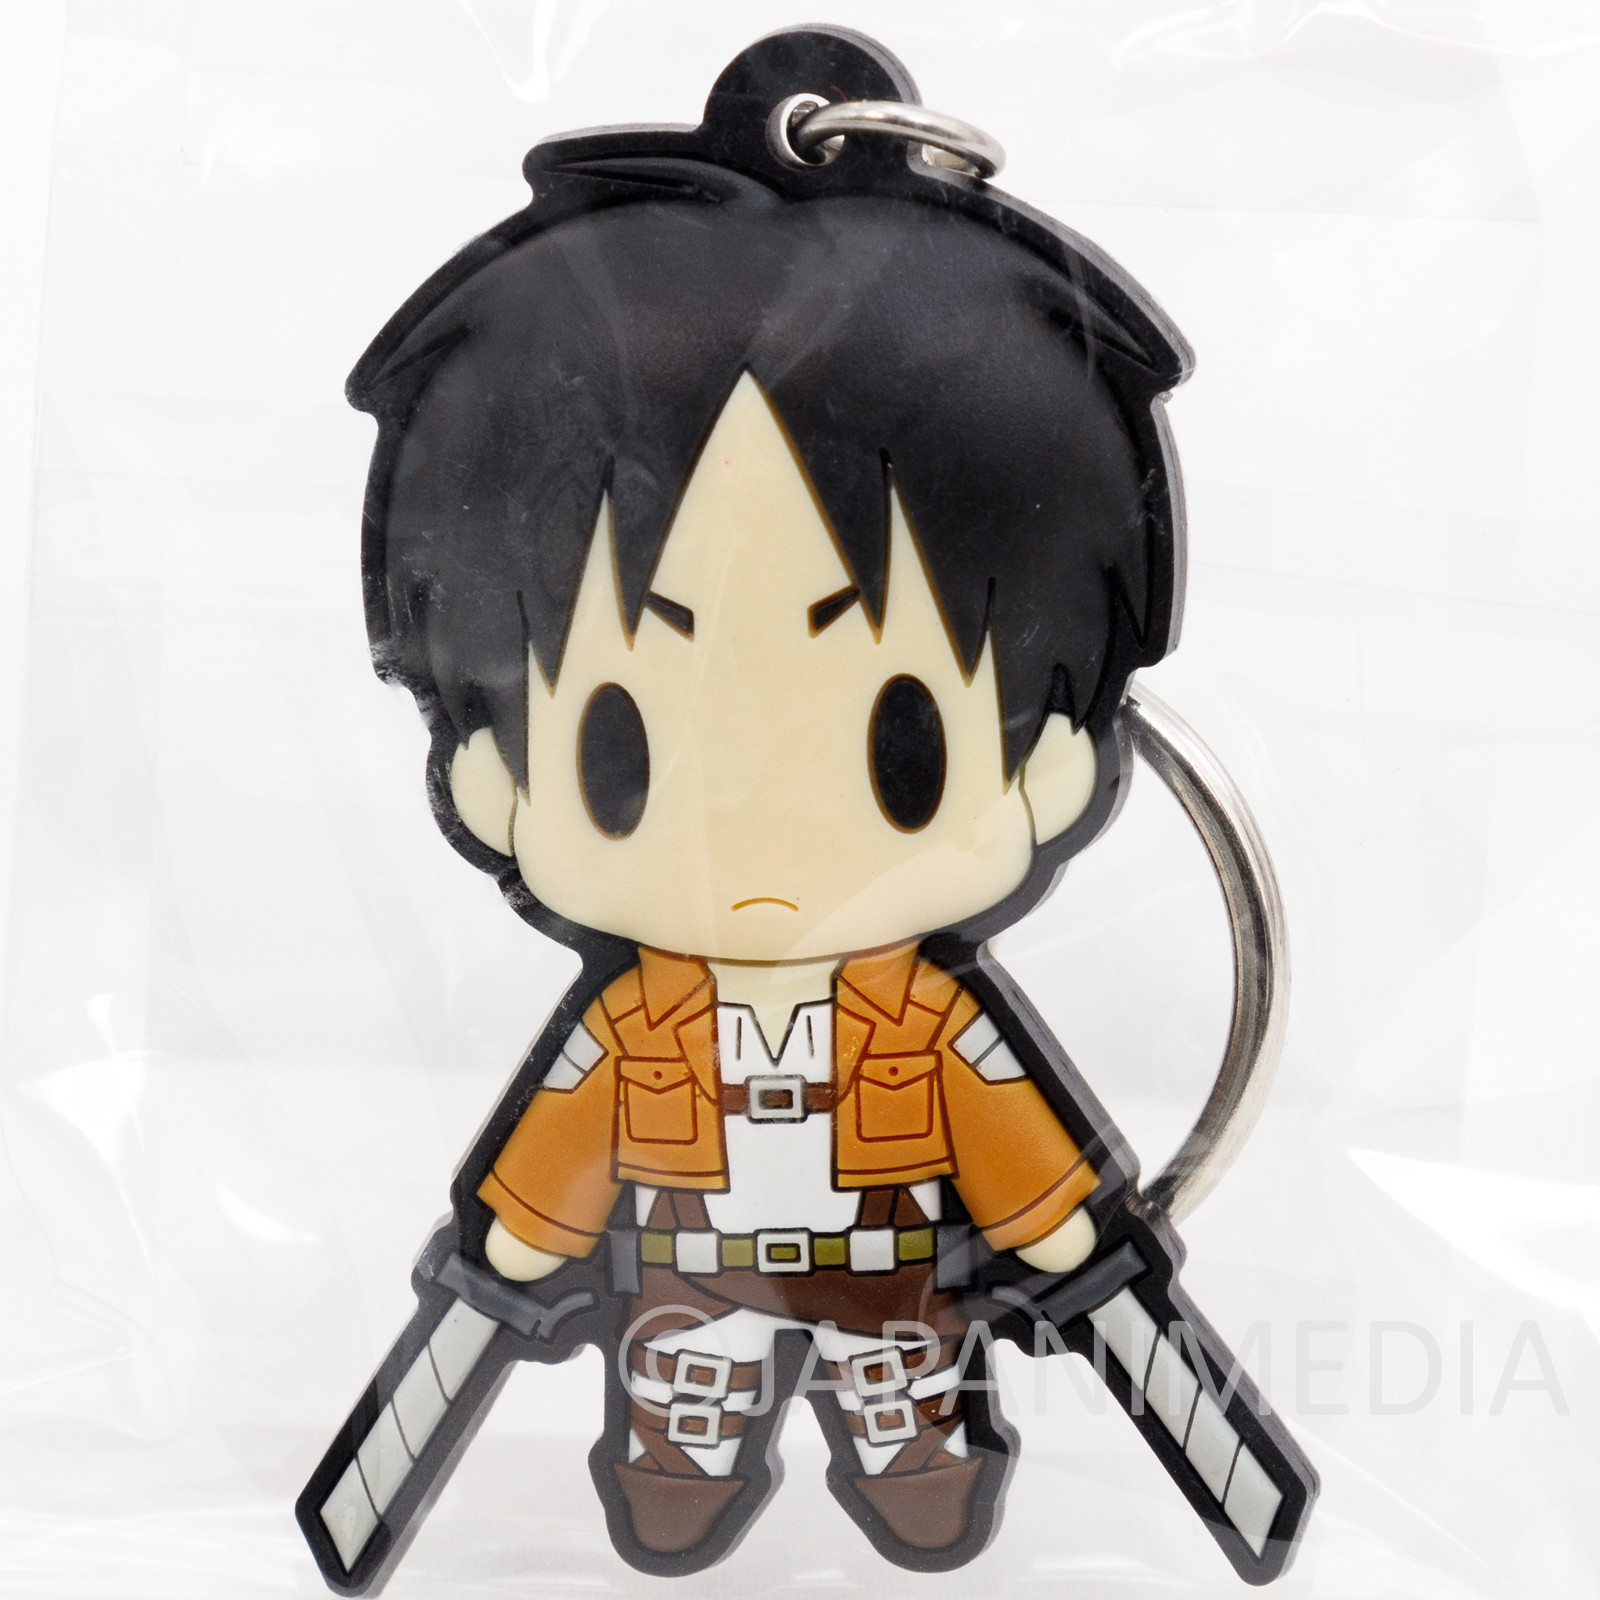 Attack on Titan Eren Yeager Rubber Mascot Keychain JAPAN ANIME